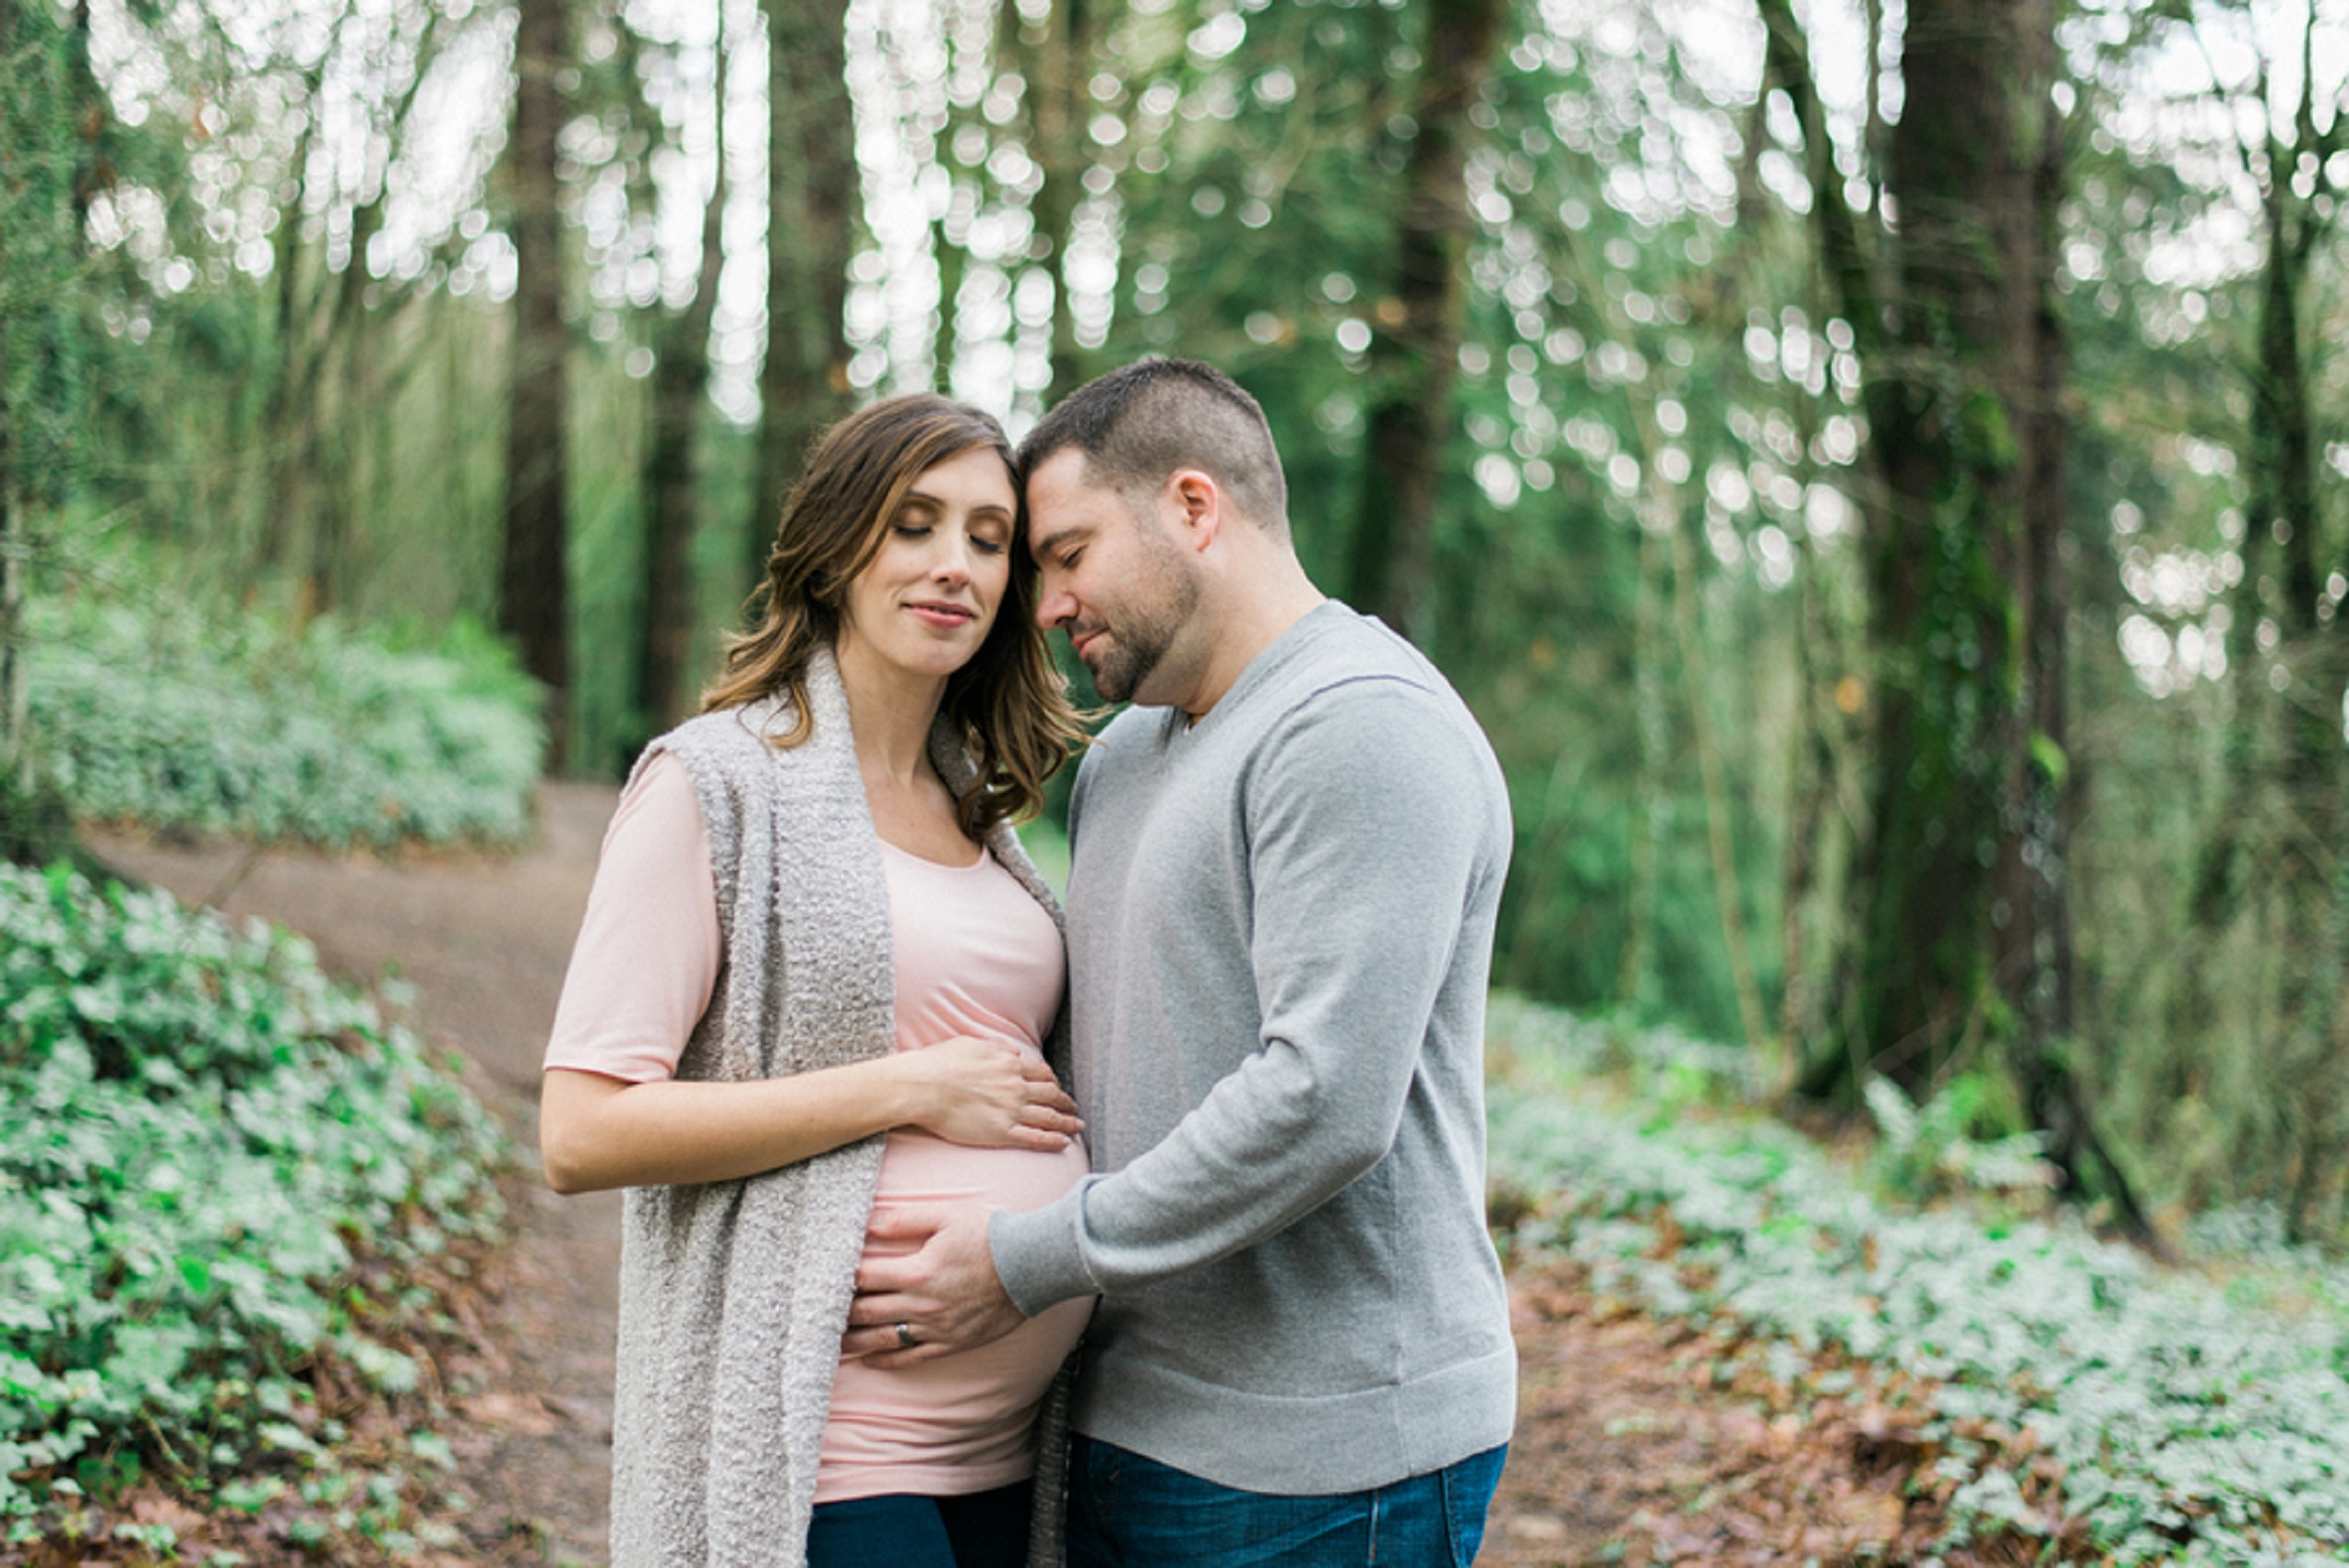 Maternity posing ideas, What to wear for maternity pictures, outdoor maternity session, Baby bump, Classic Portland Maternity Photos